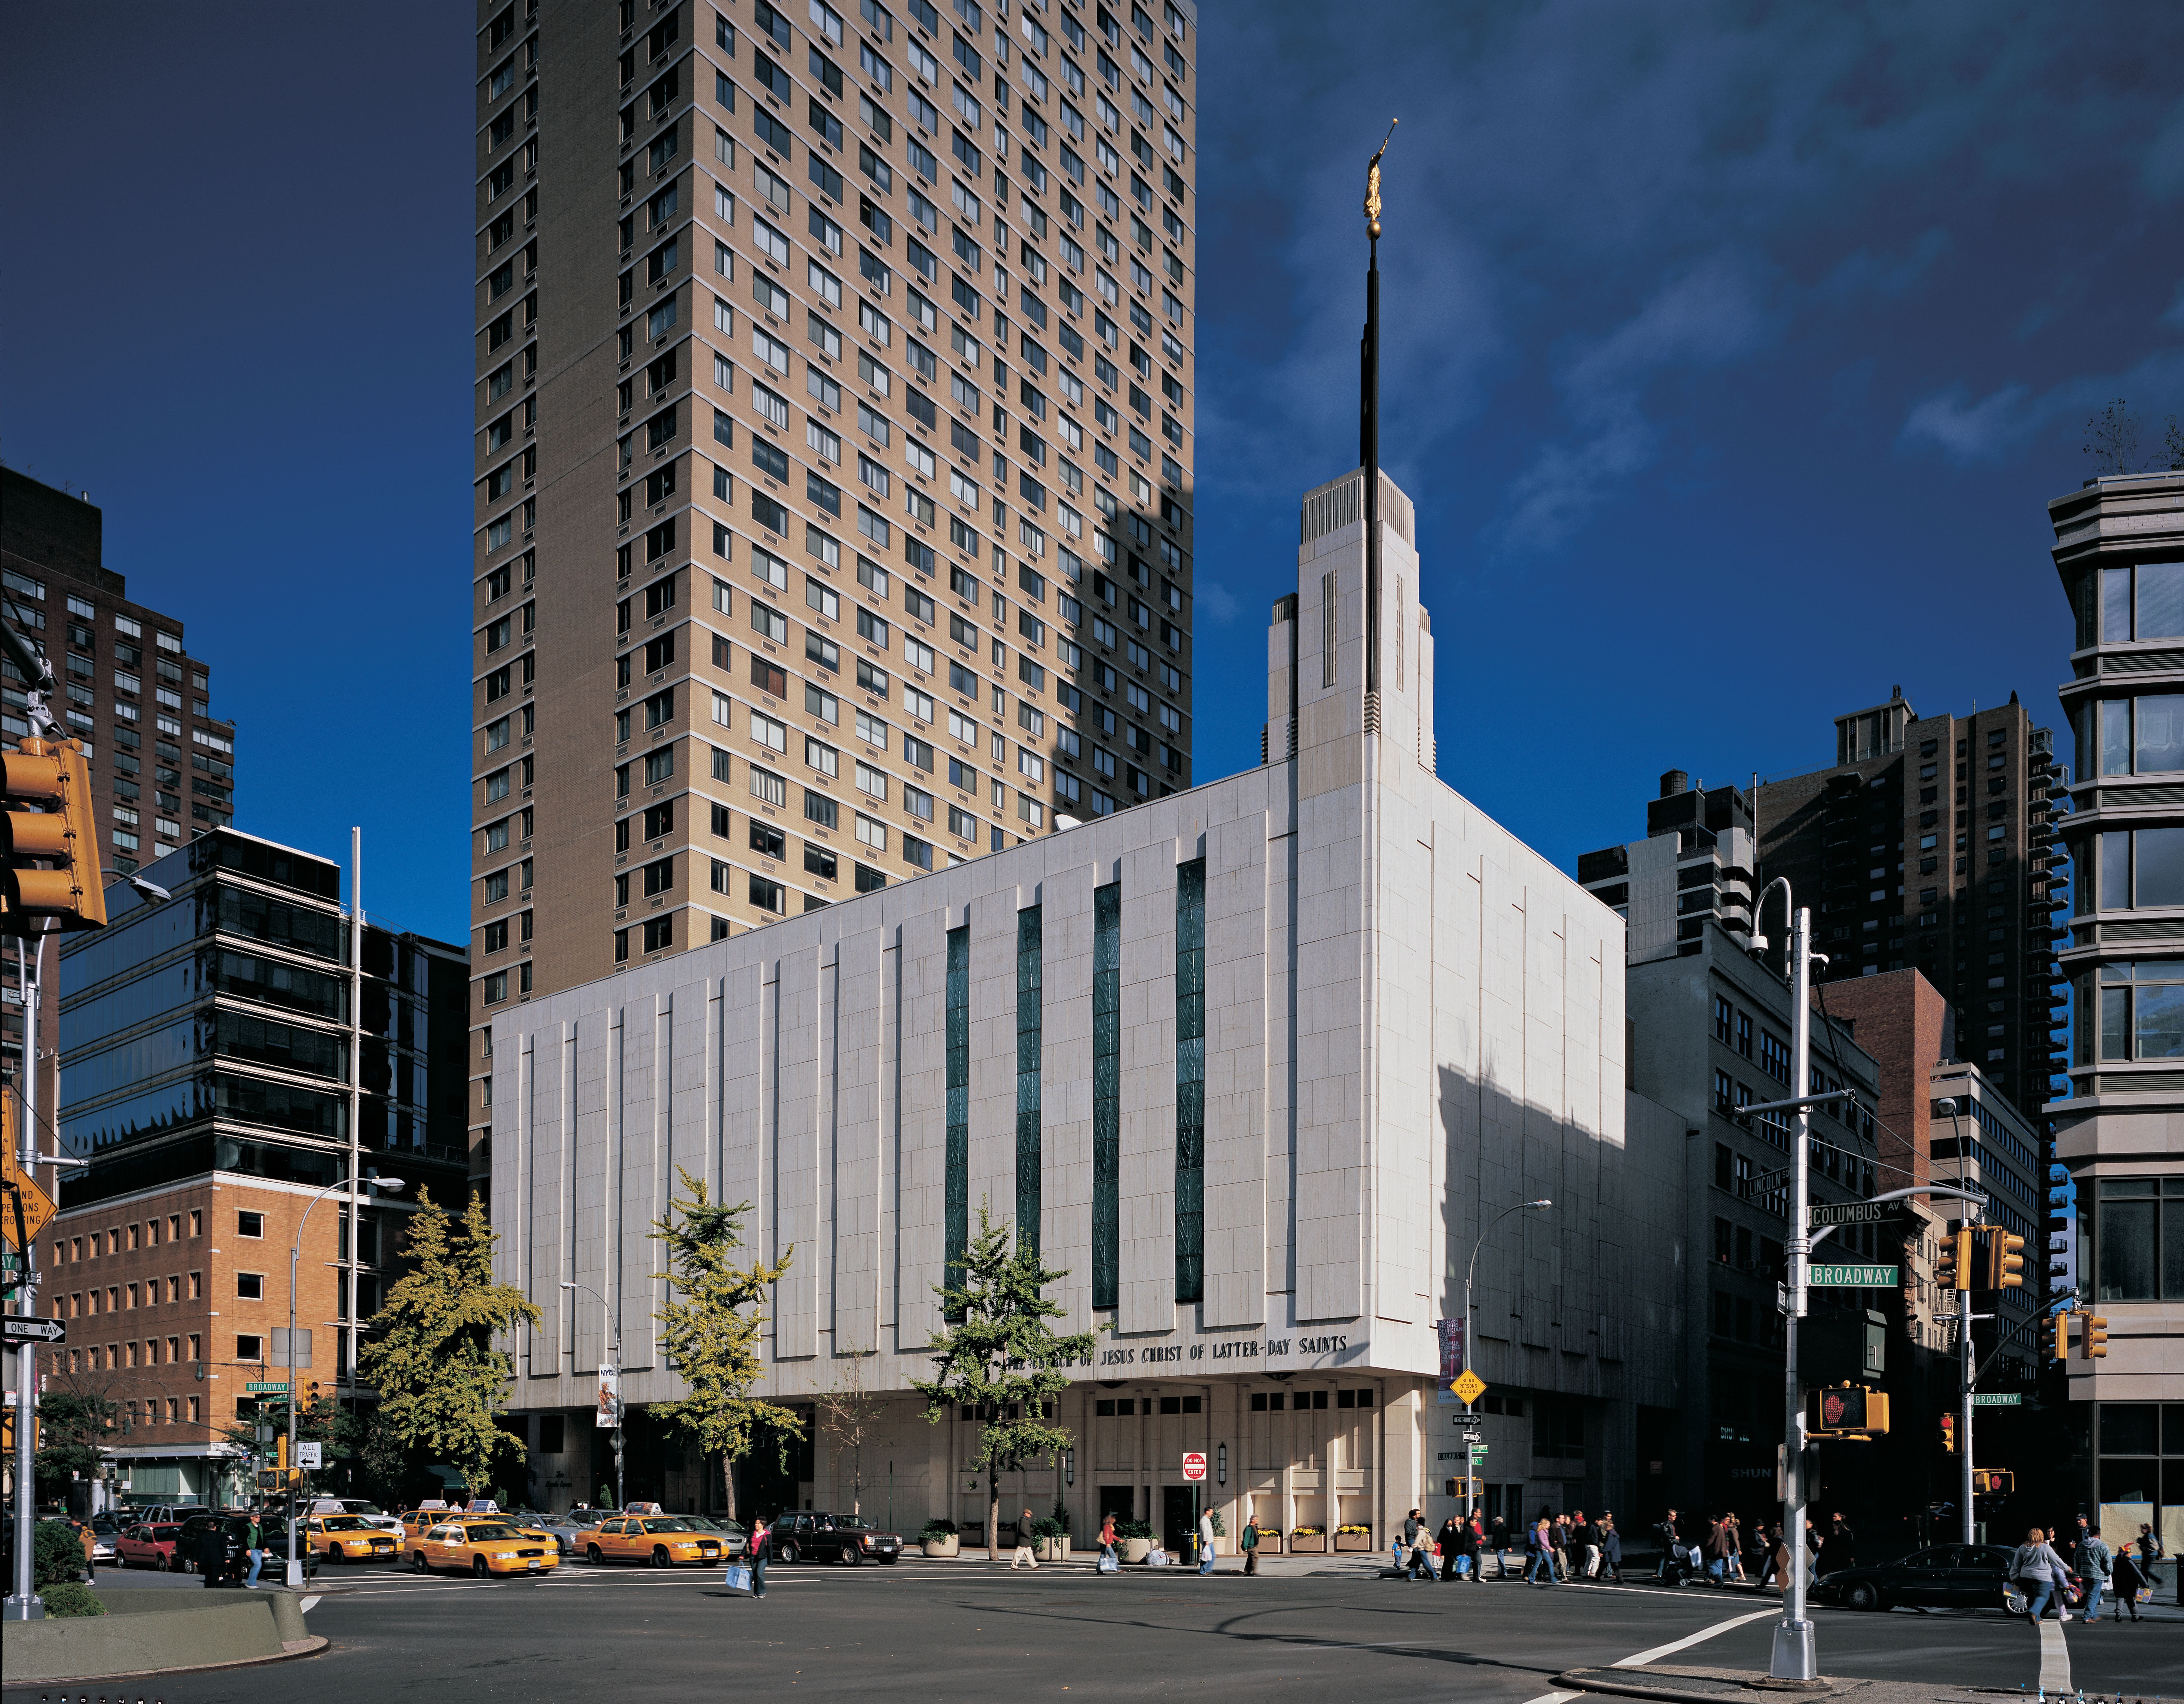 The Manhattan New York Temple against a dark sky, including the entrance and scenery.